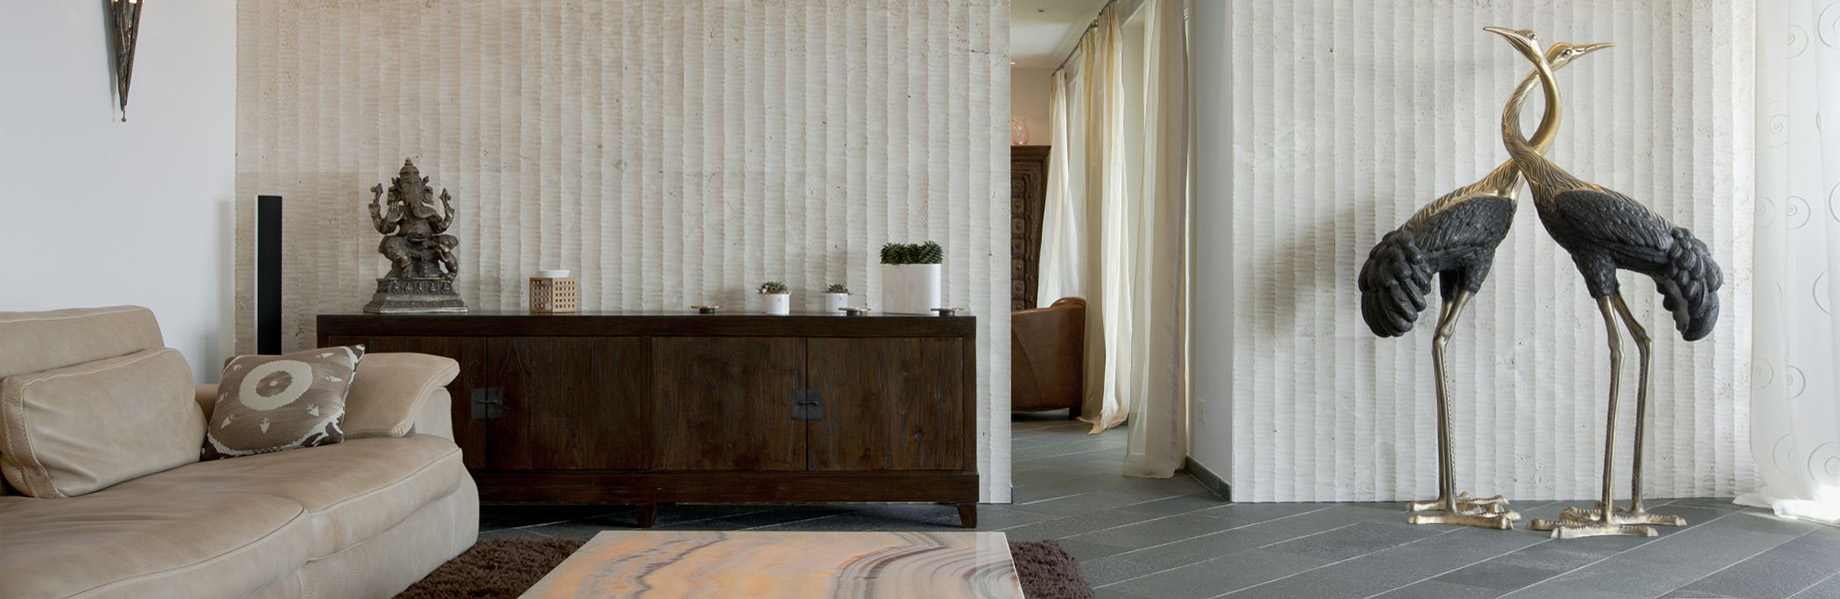 Textural stone for wellness design